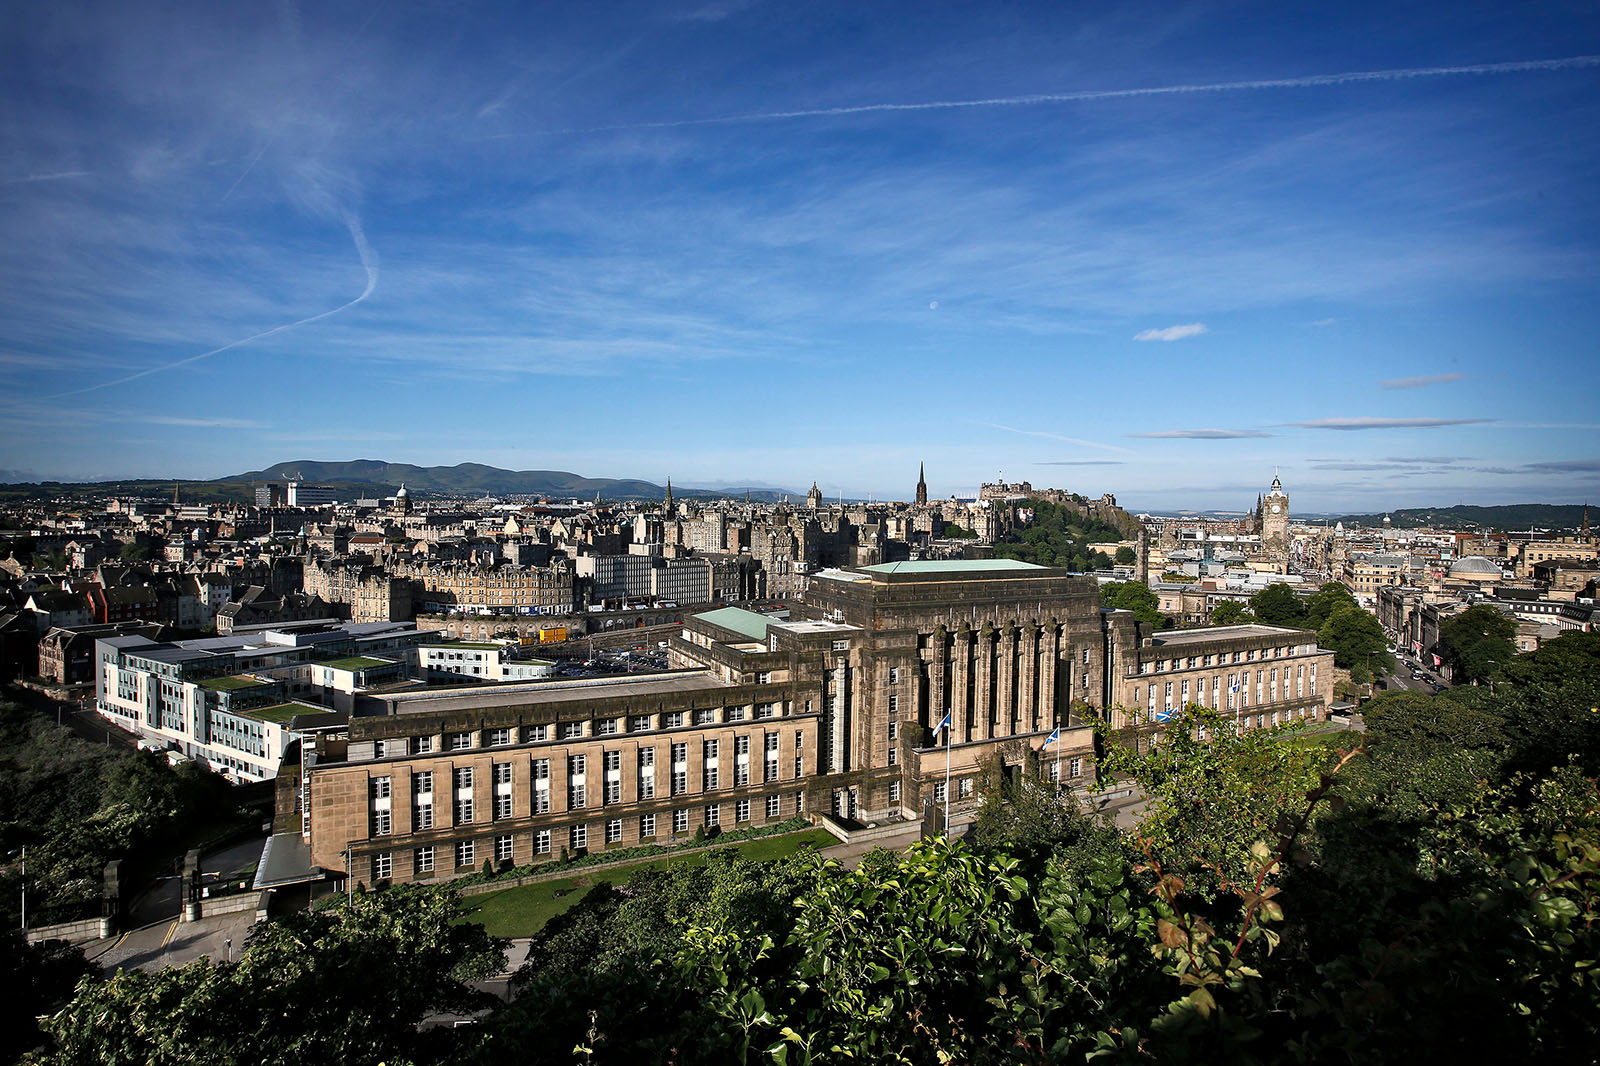 Landscape view of Edinburgh city centre